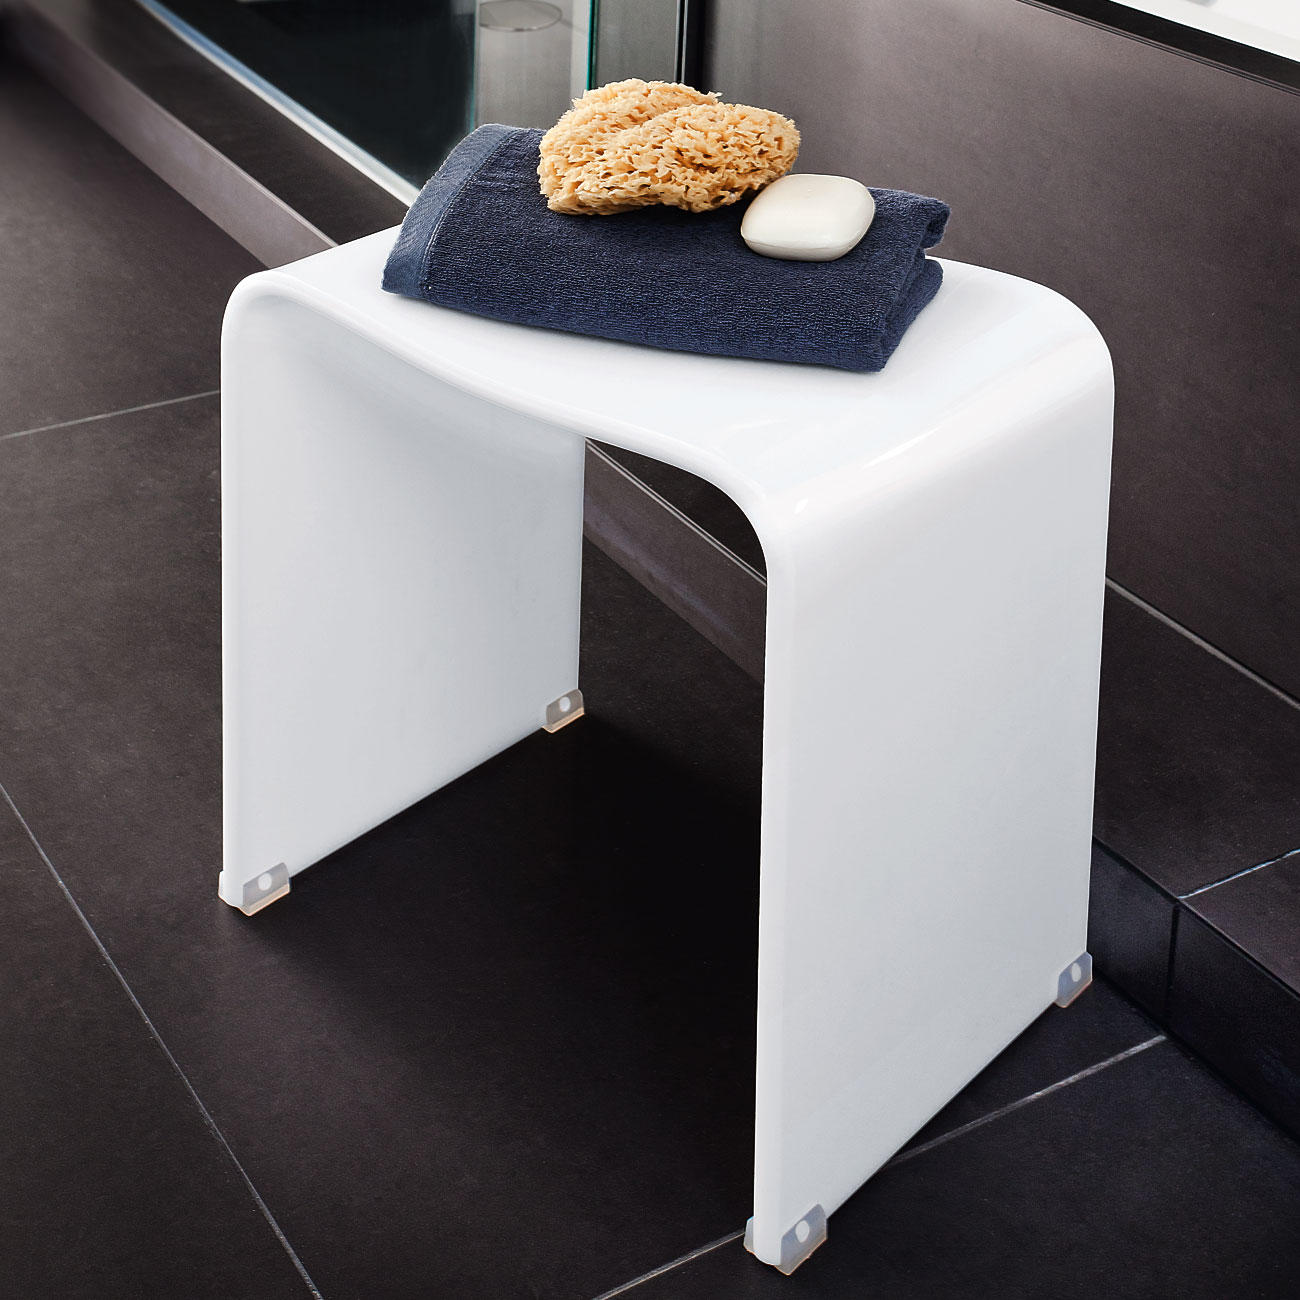 tabouret de bain acrylique garantie produit de 3 ans. Black Bedroom Furniture Sets. Home Design Ideas